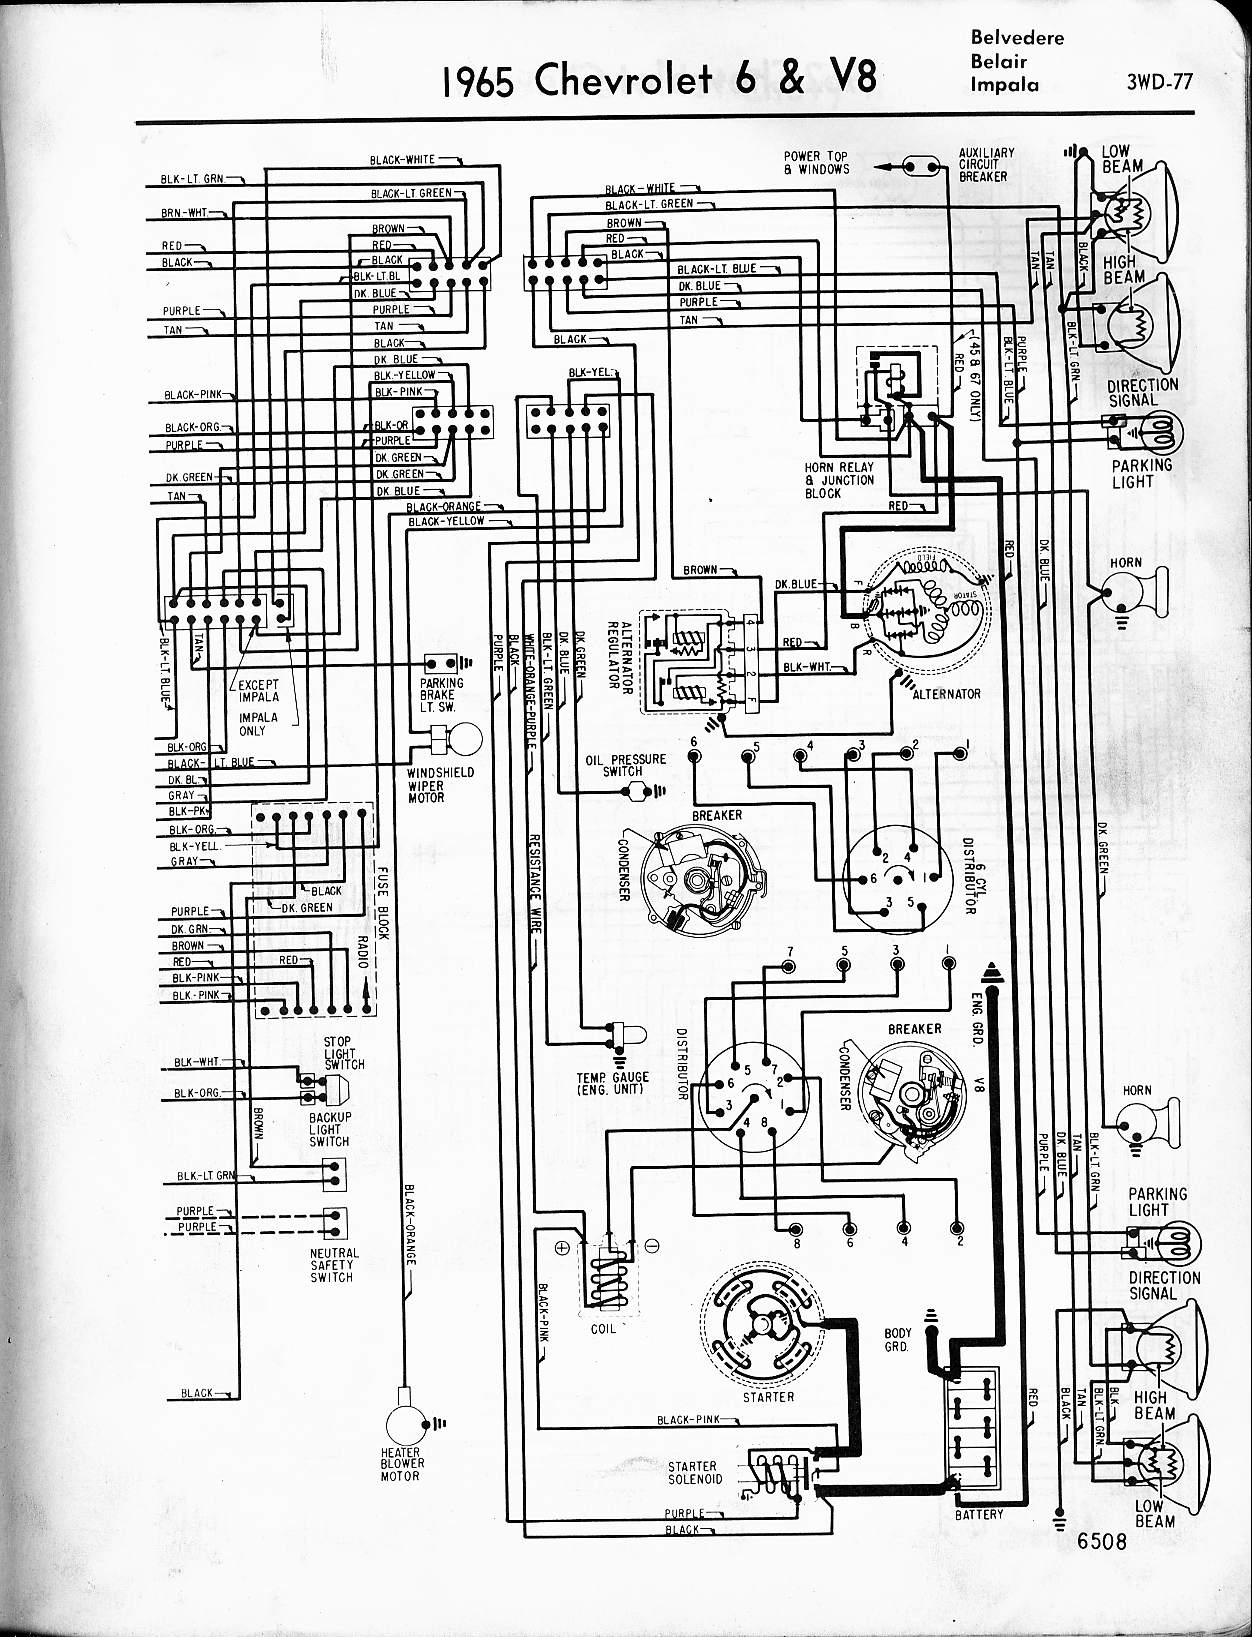 MWireChev65_3WD 077 chevelle wiring diagram 1970 chevelle horn wiring diagram \u2022 wiring 64 Chevy Impala Wiring Diagram at webbmarketing.co